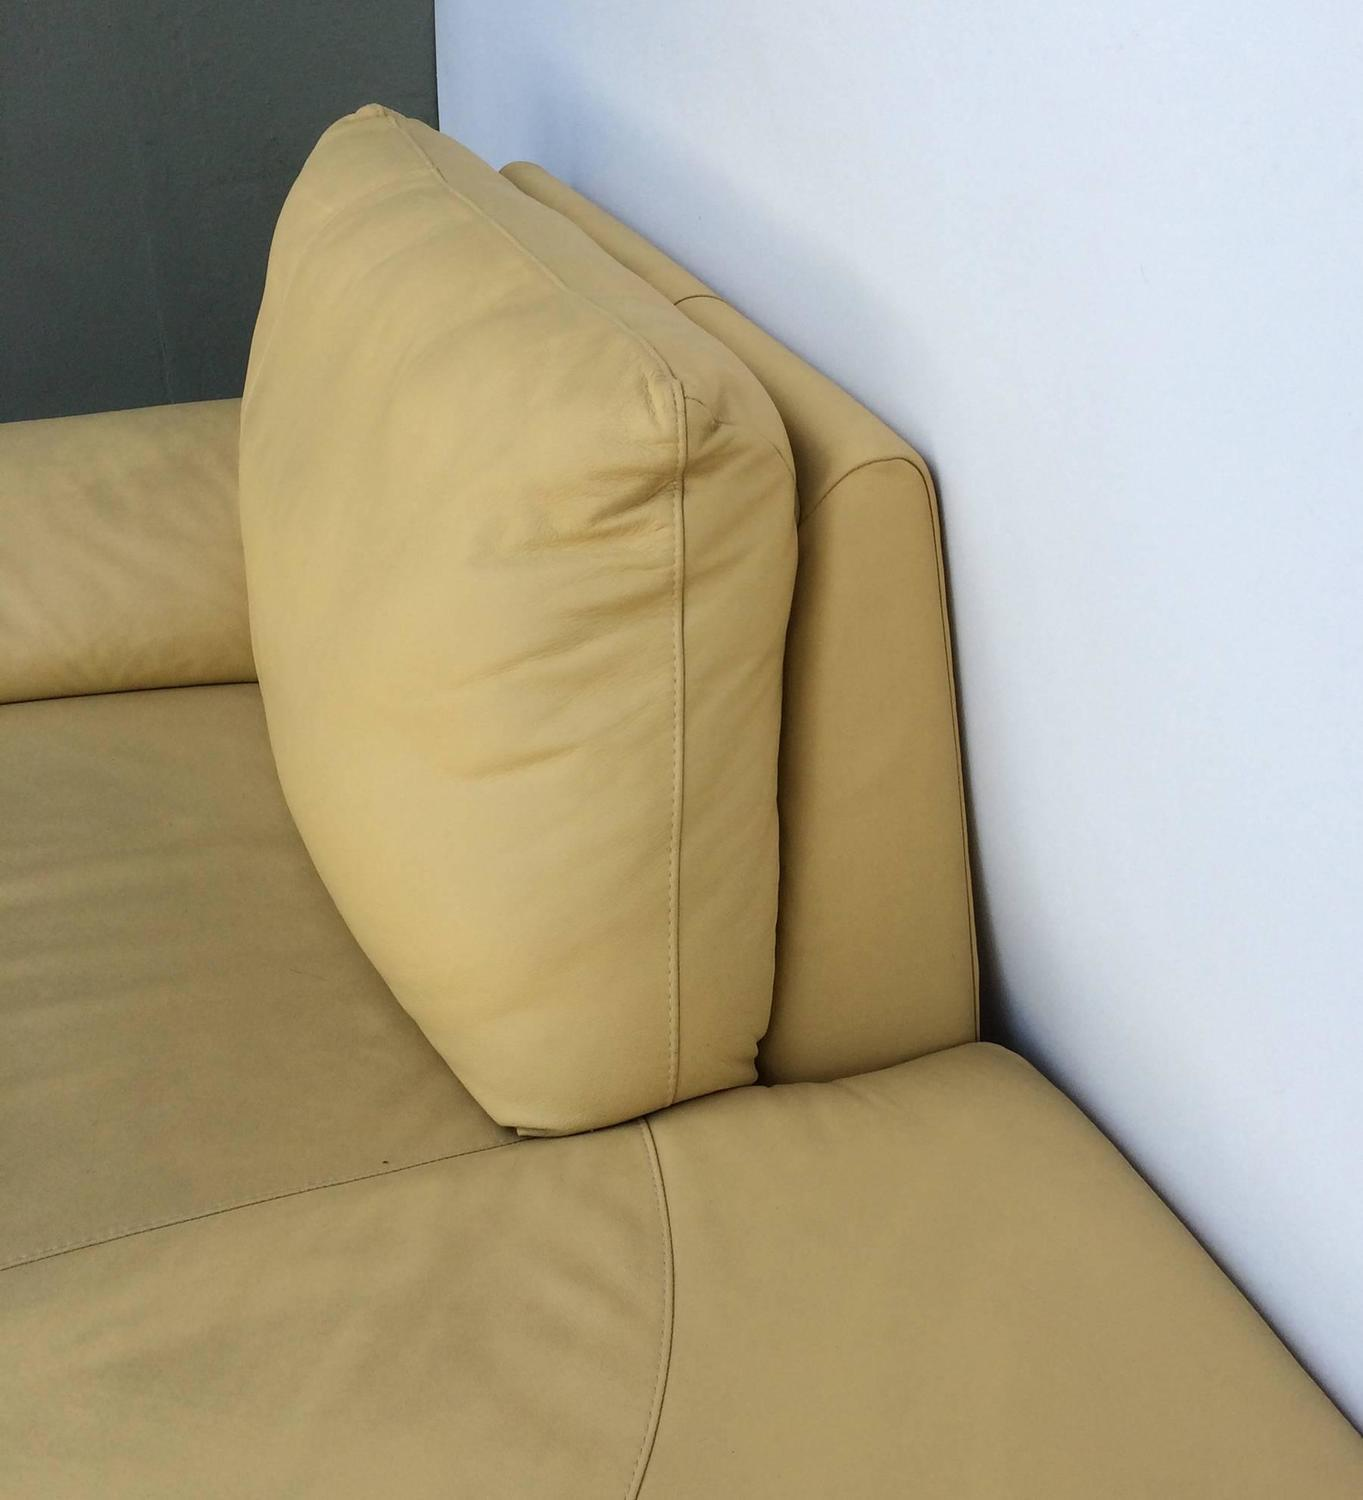 Overstuffed Armchairs For Sale Nicoletti Leather Chaise Lounge For Sale At 1stdibs